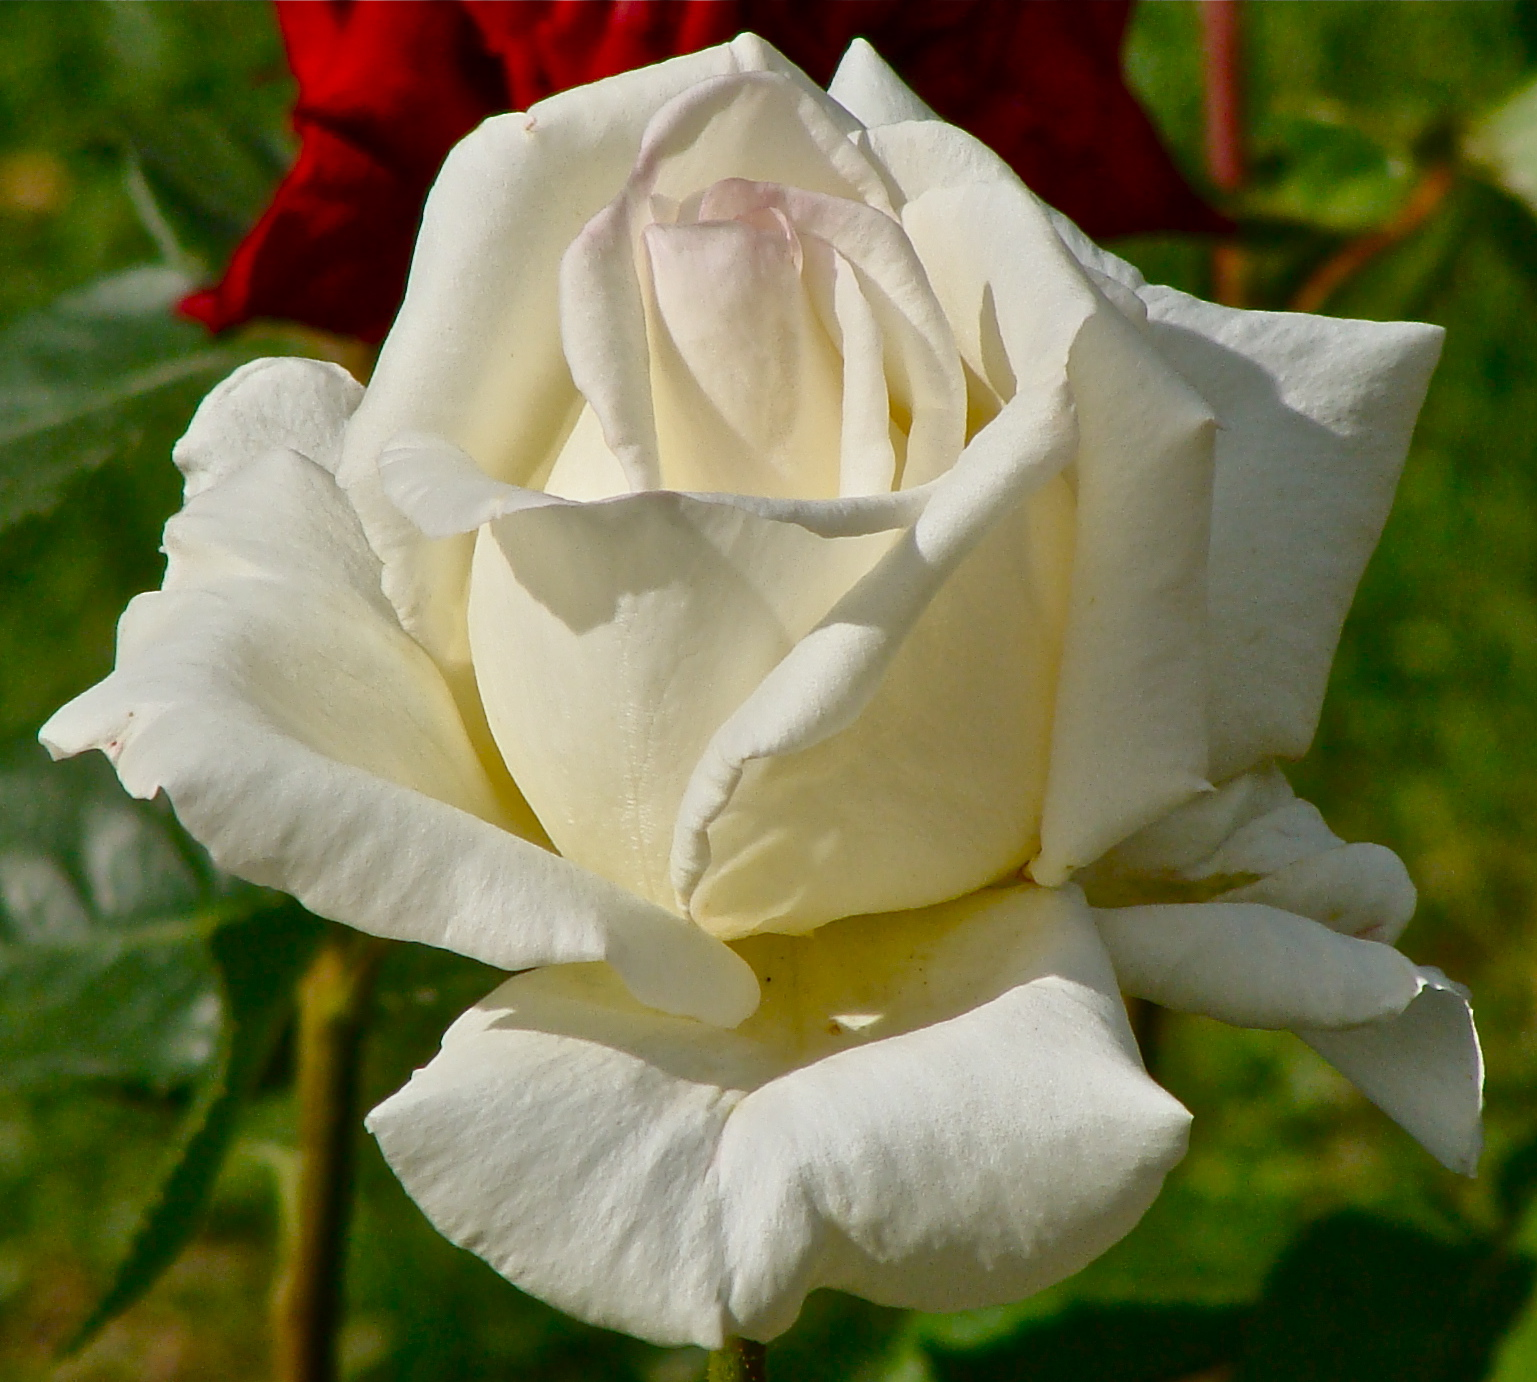 File:Rose blanche 1.JPG - Wikimedia Commons